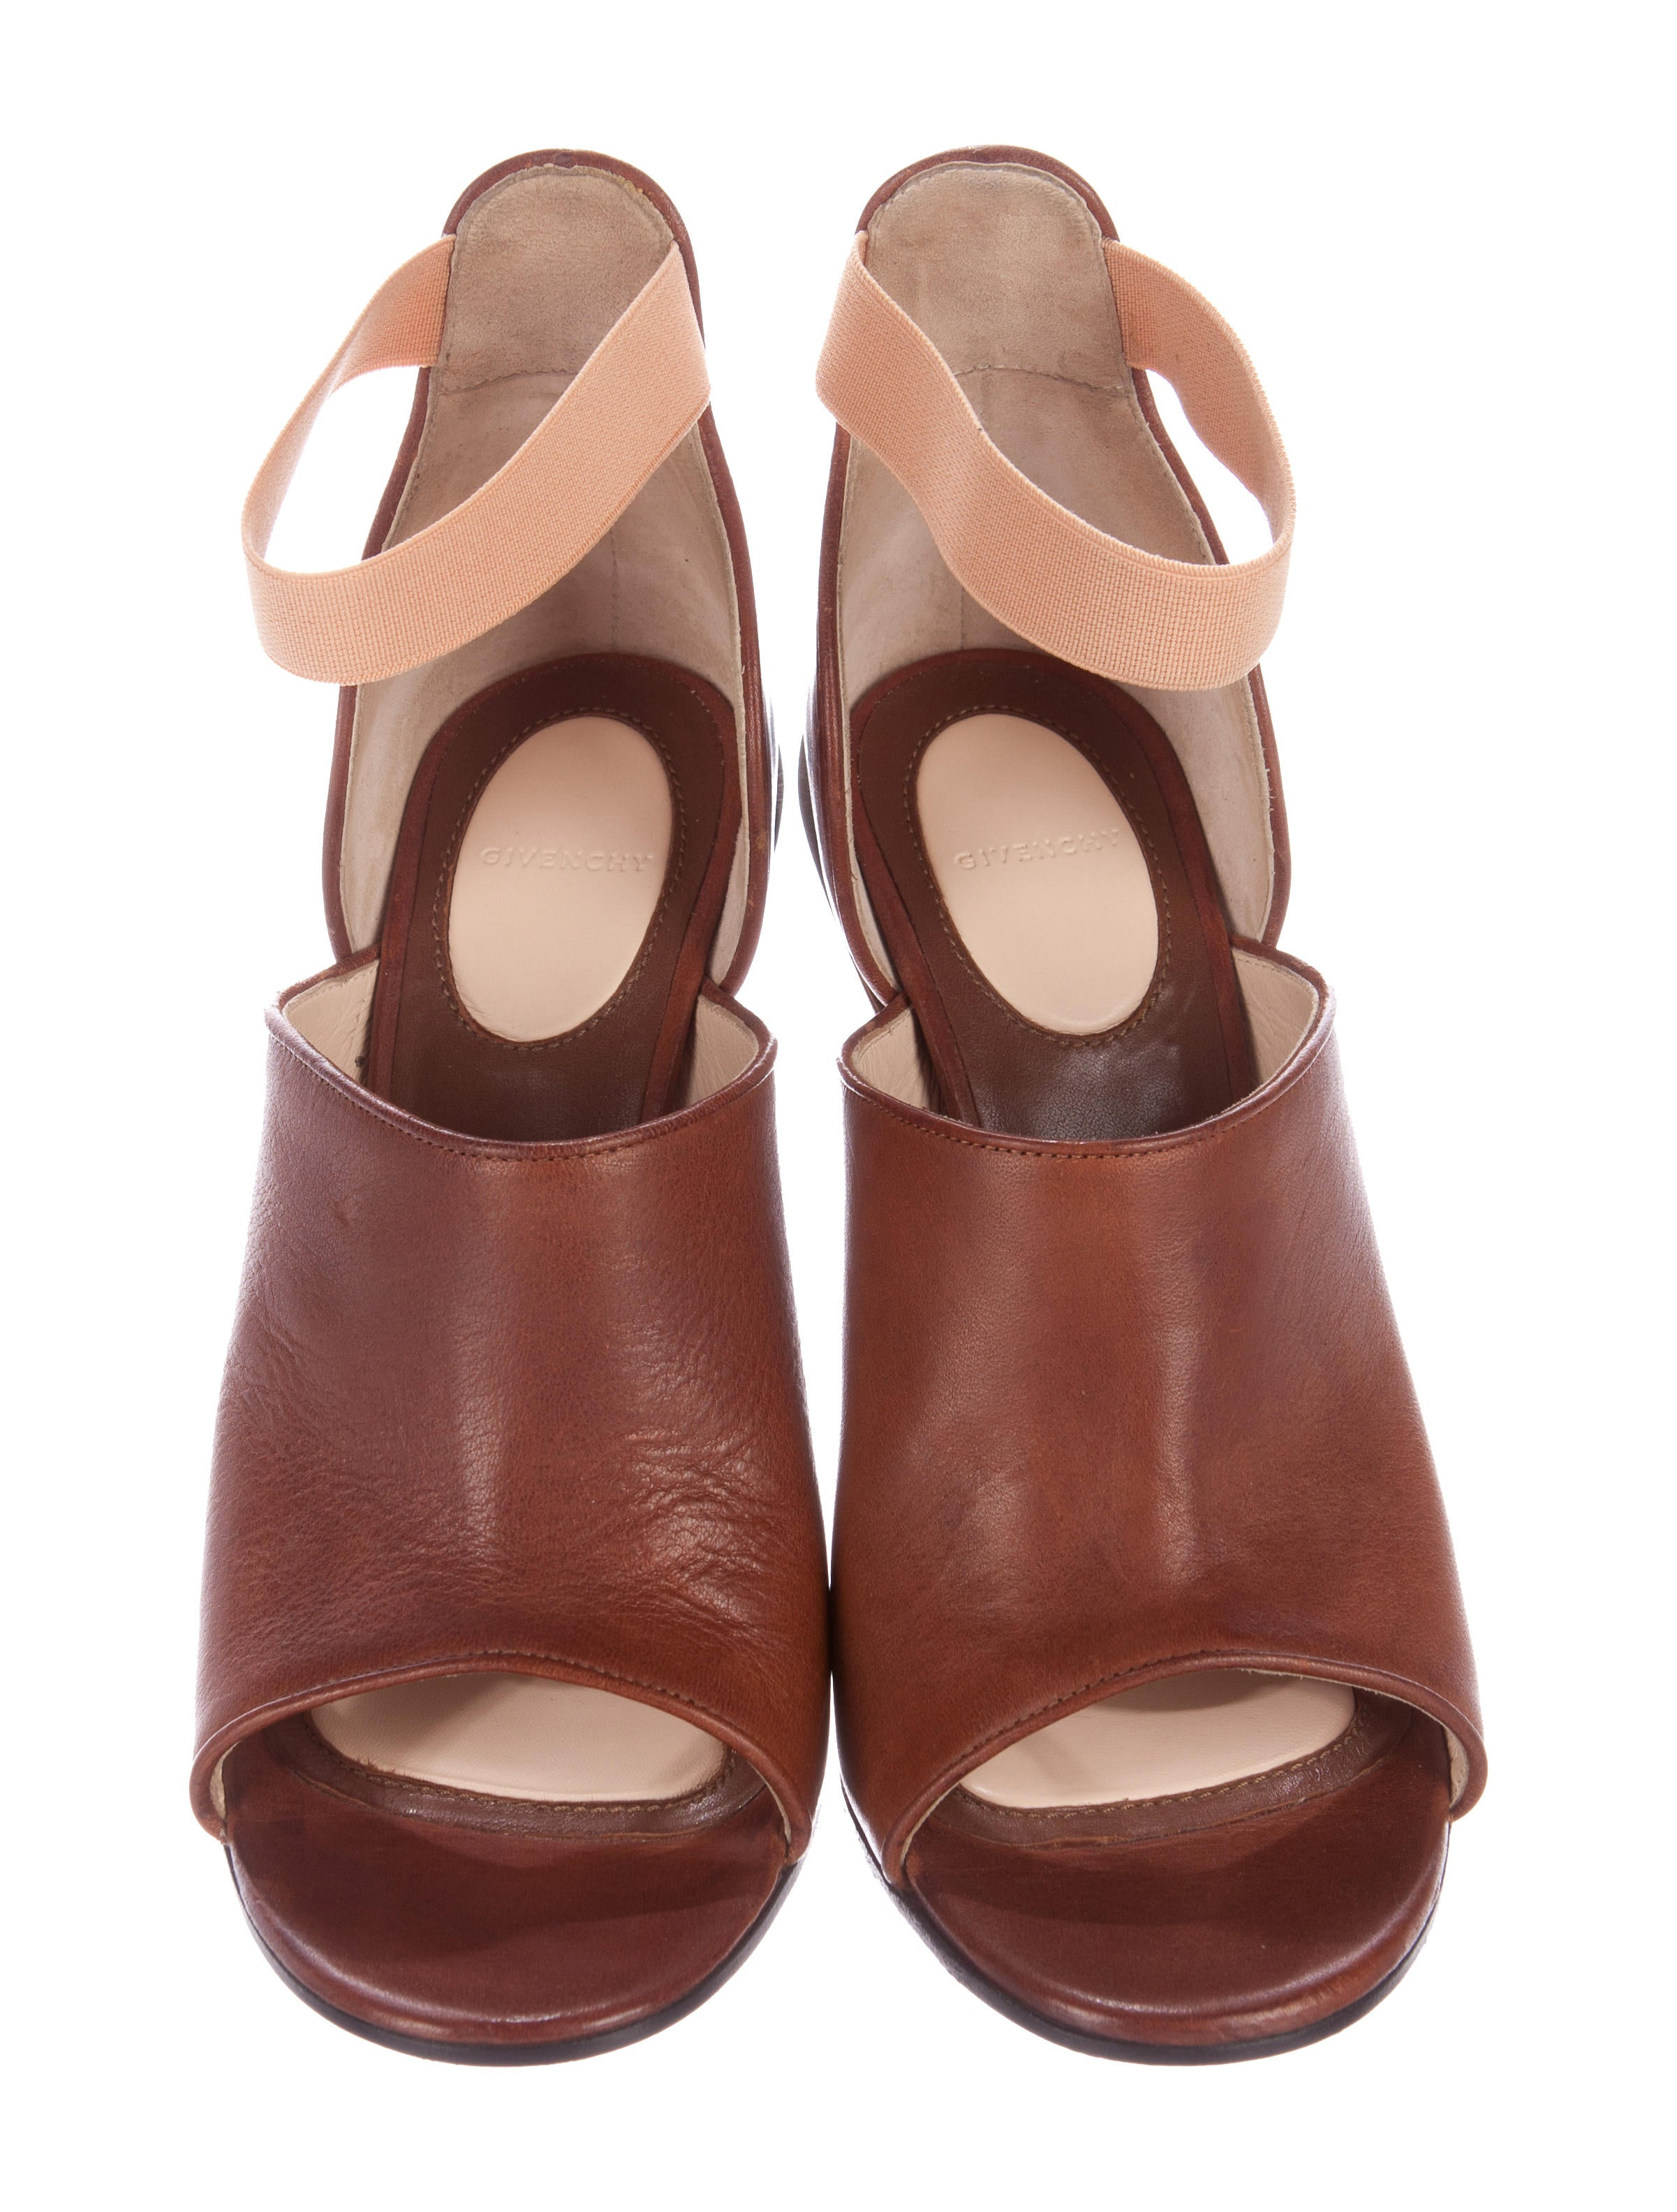 Givenchy Dunka Leather Sandals - Shoes - GIV37295 : The RealReal